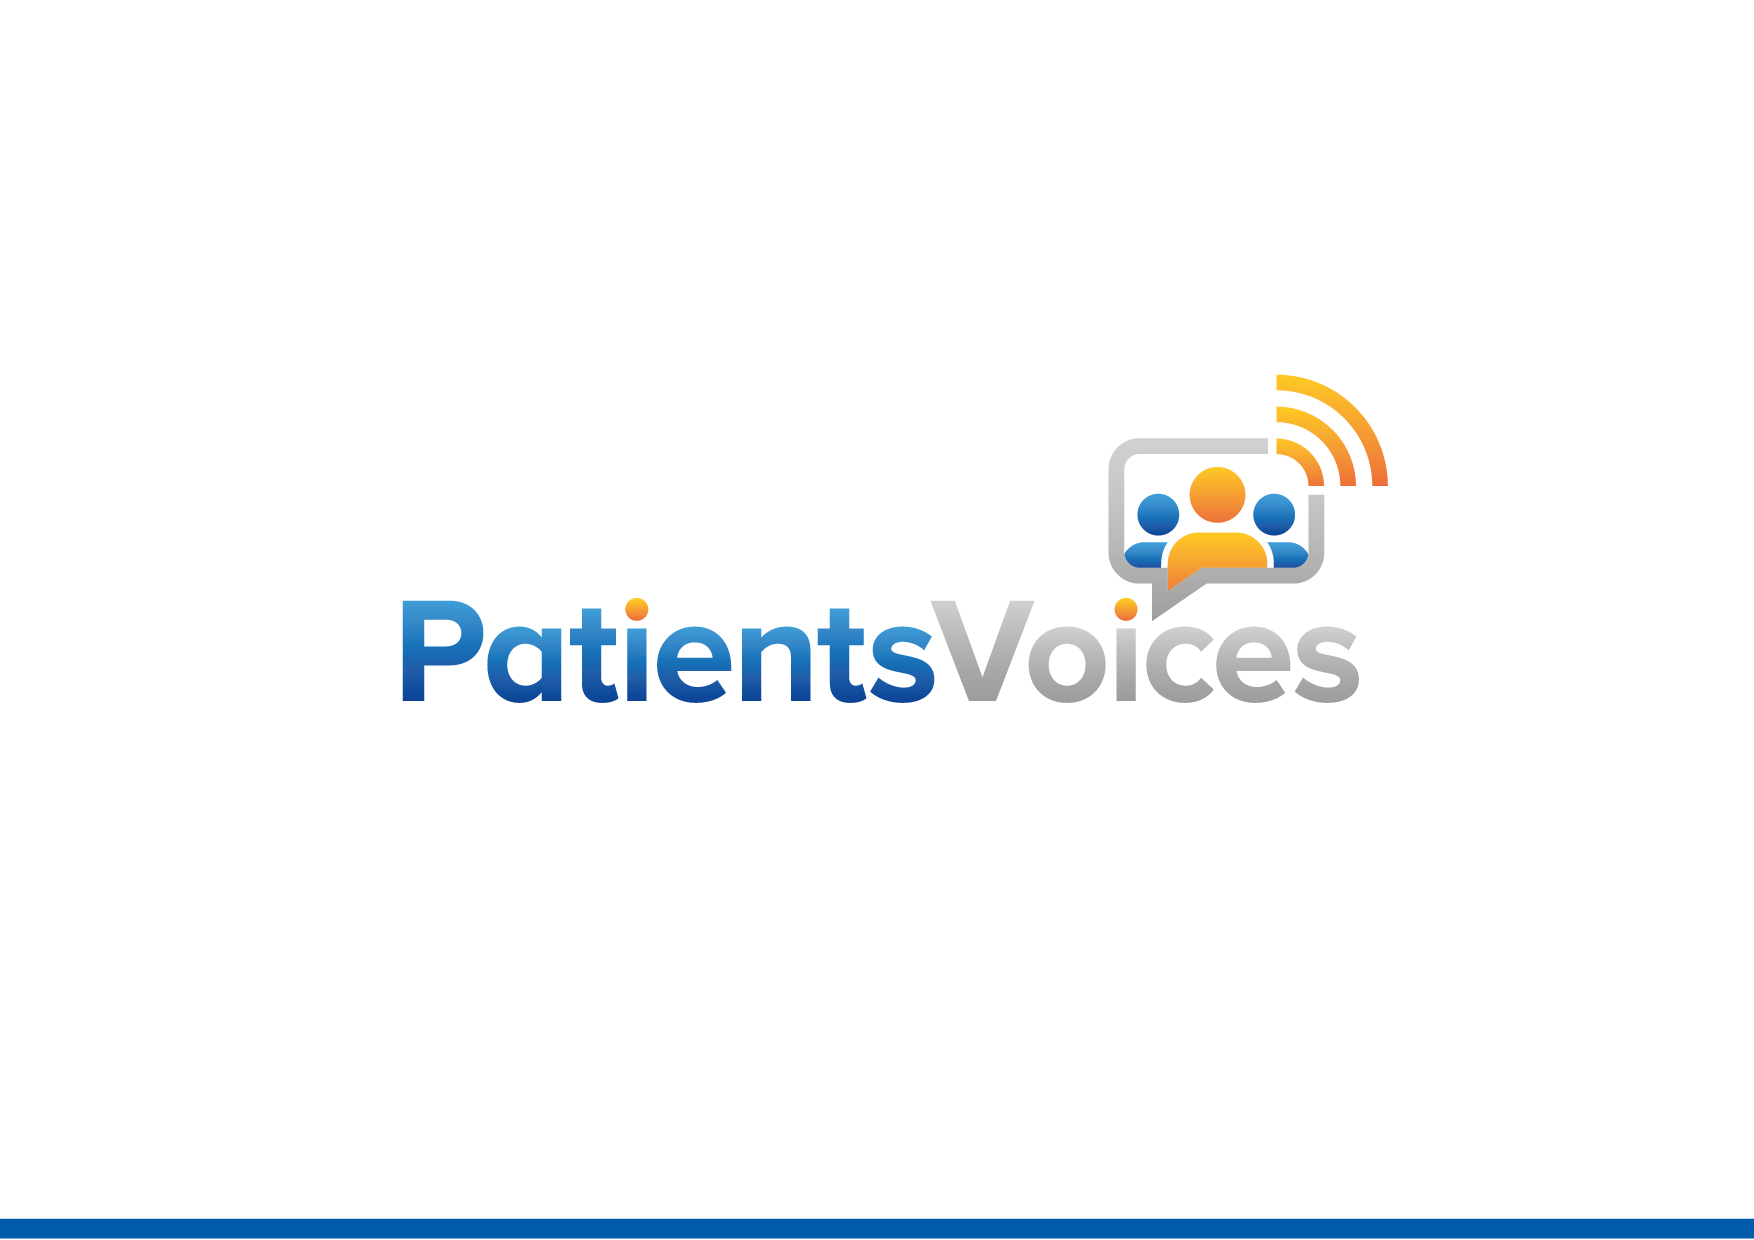 Help PatientsVoices with a new logo